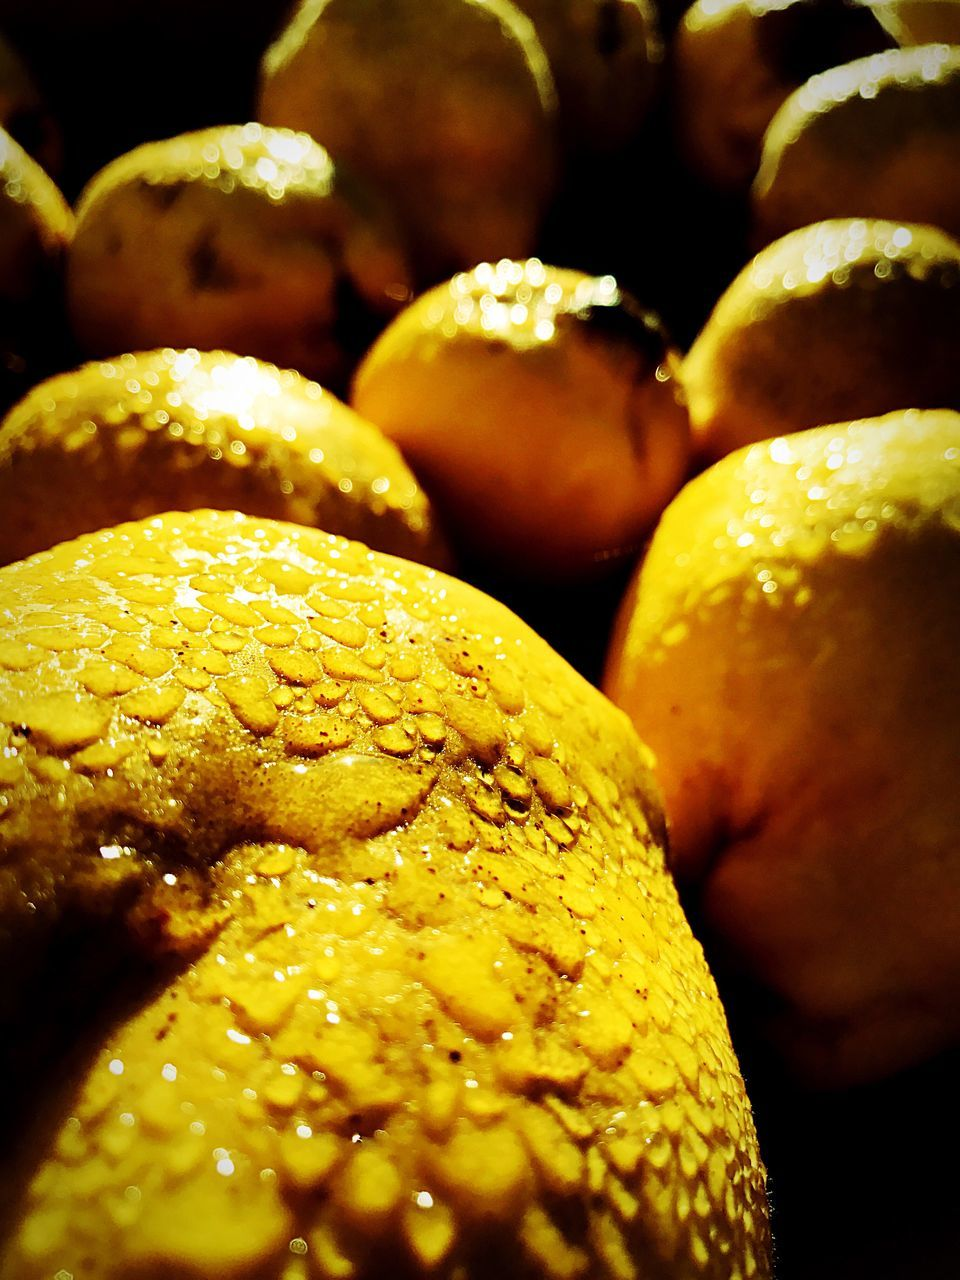 food and drink, food, freshness, fruit, close-up, healthy eating, no people, full frame, backgrounds, indoors, day